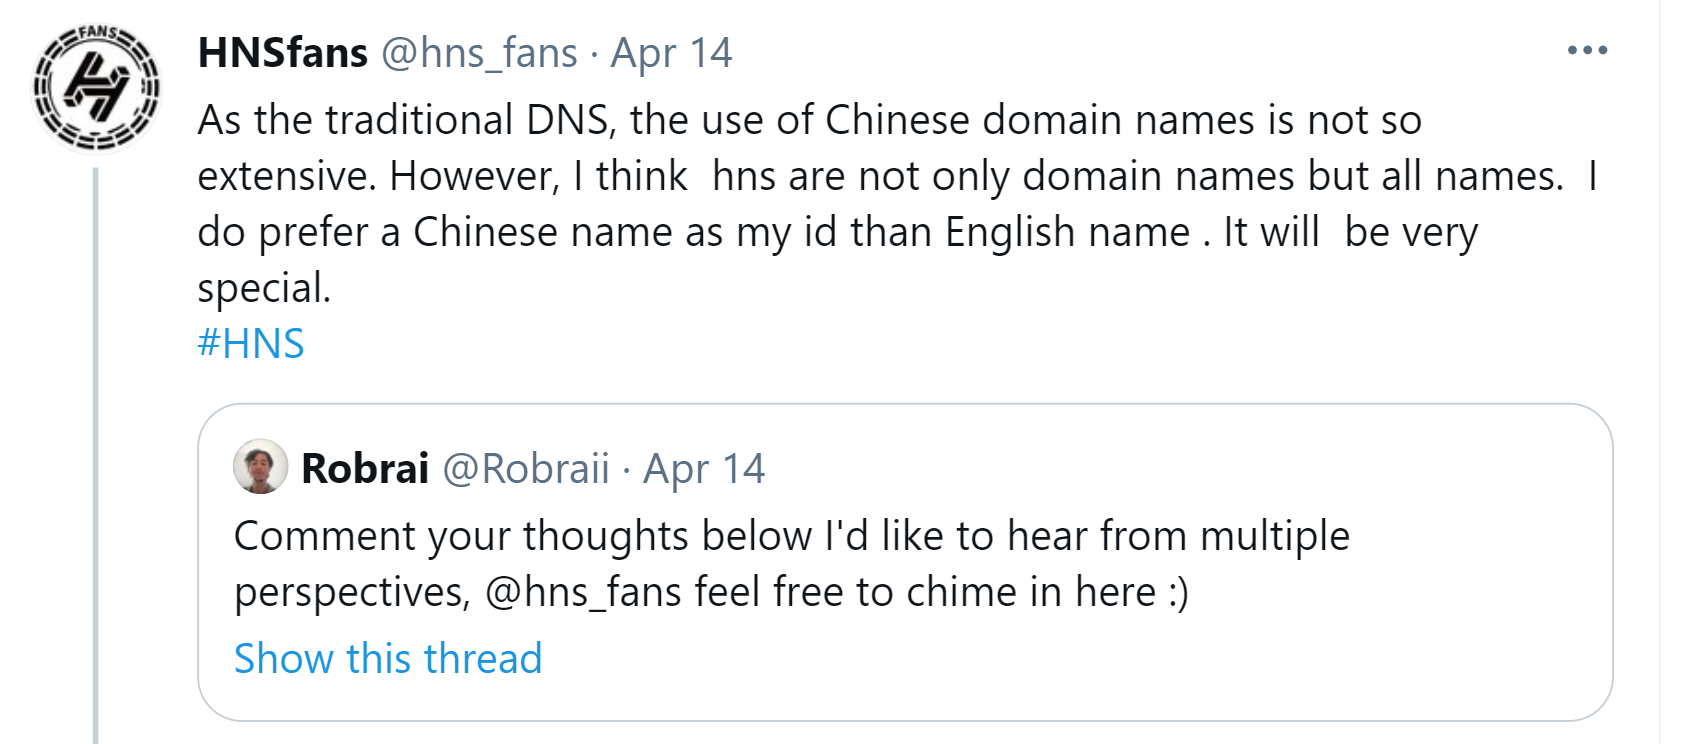 HNSfans speaking on IDN's in the HNS ecosystem. They are the leading Chinese connector in the community.